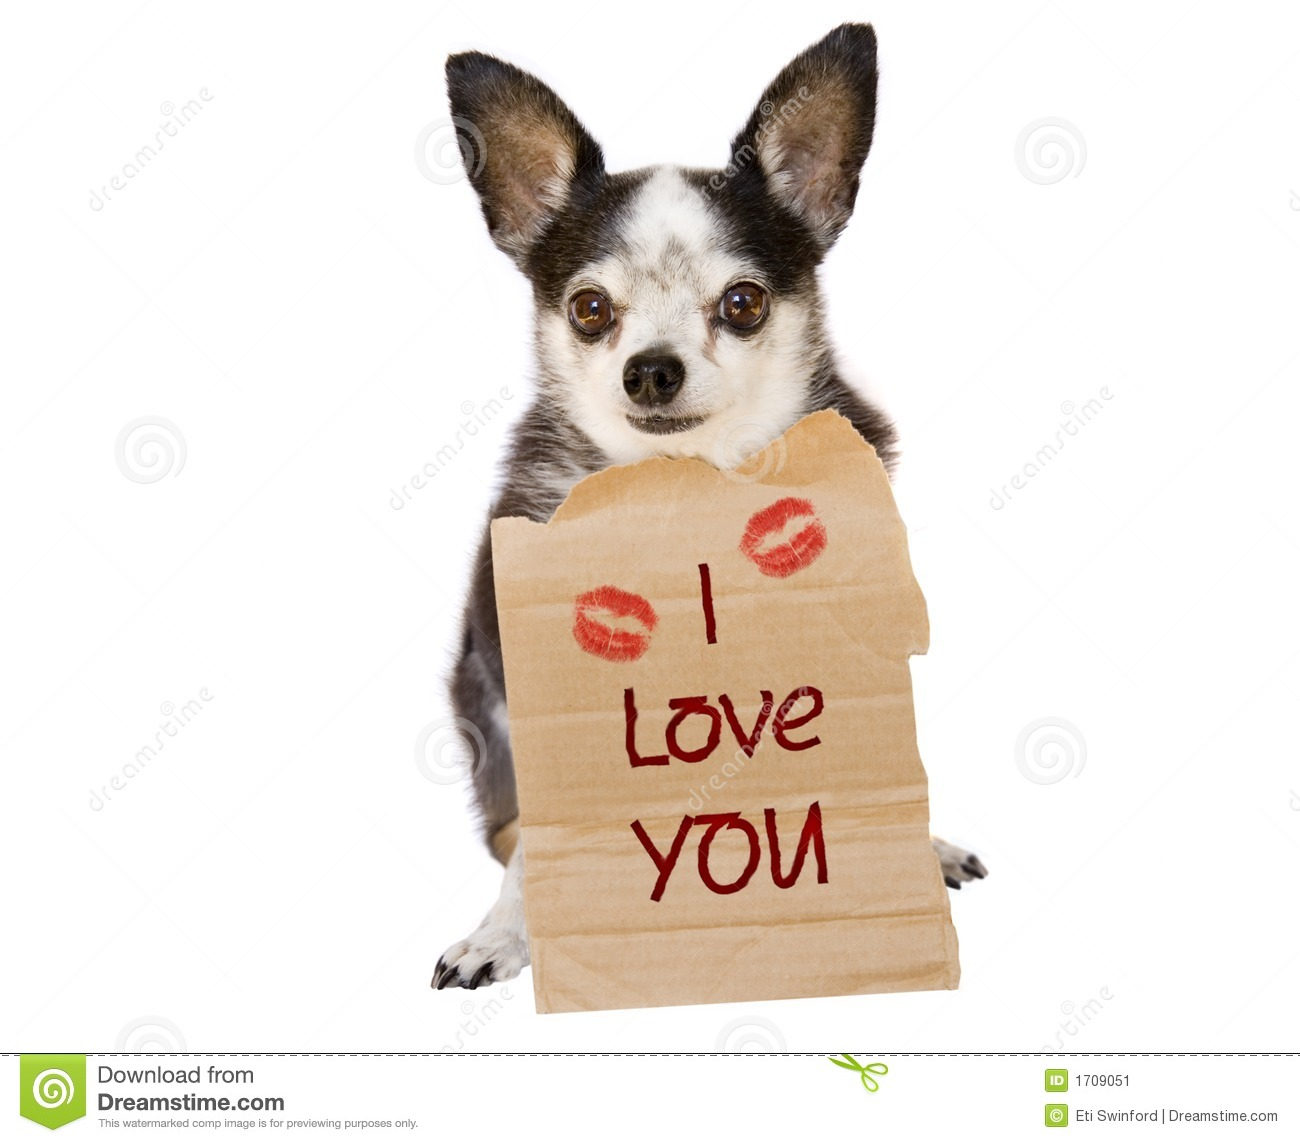 Happy Valentines Day To The One You Love From A Chihuahua Dog